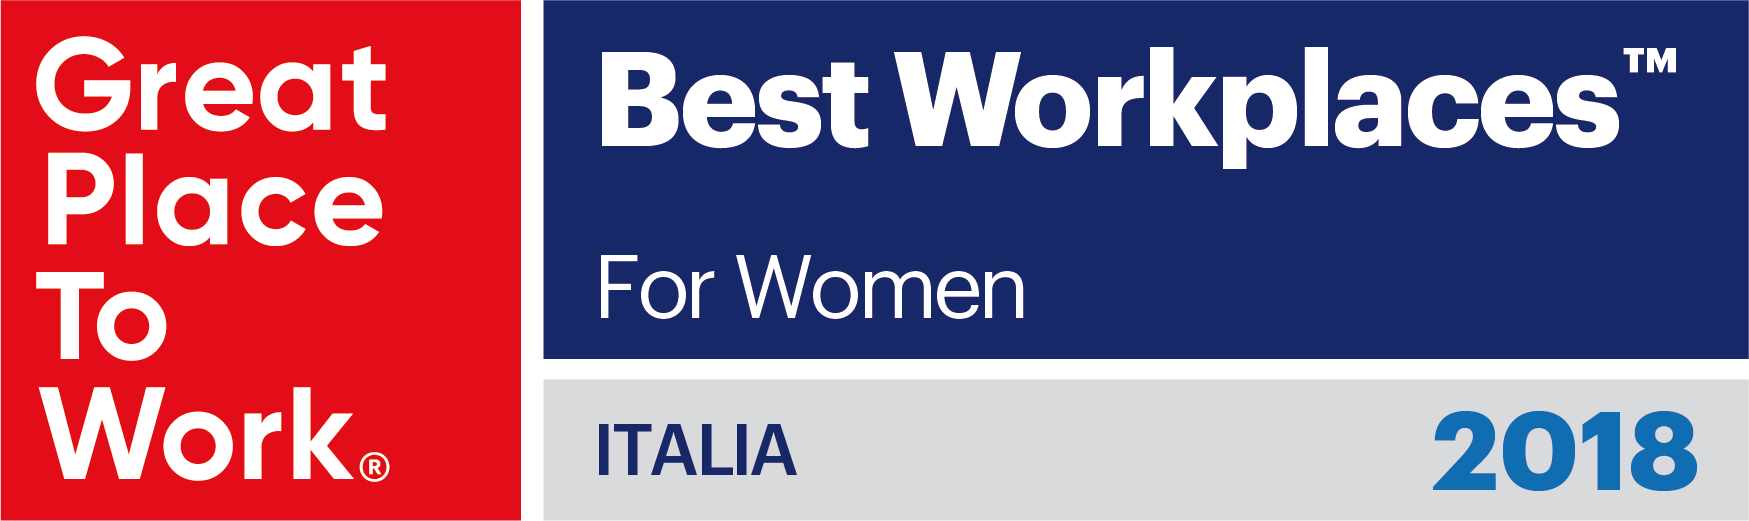 Best Workplaces for Women 2018